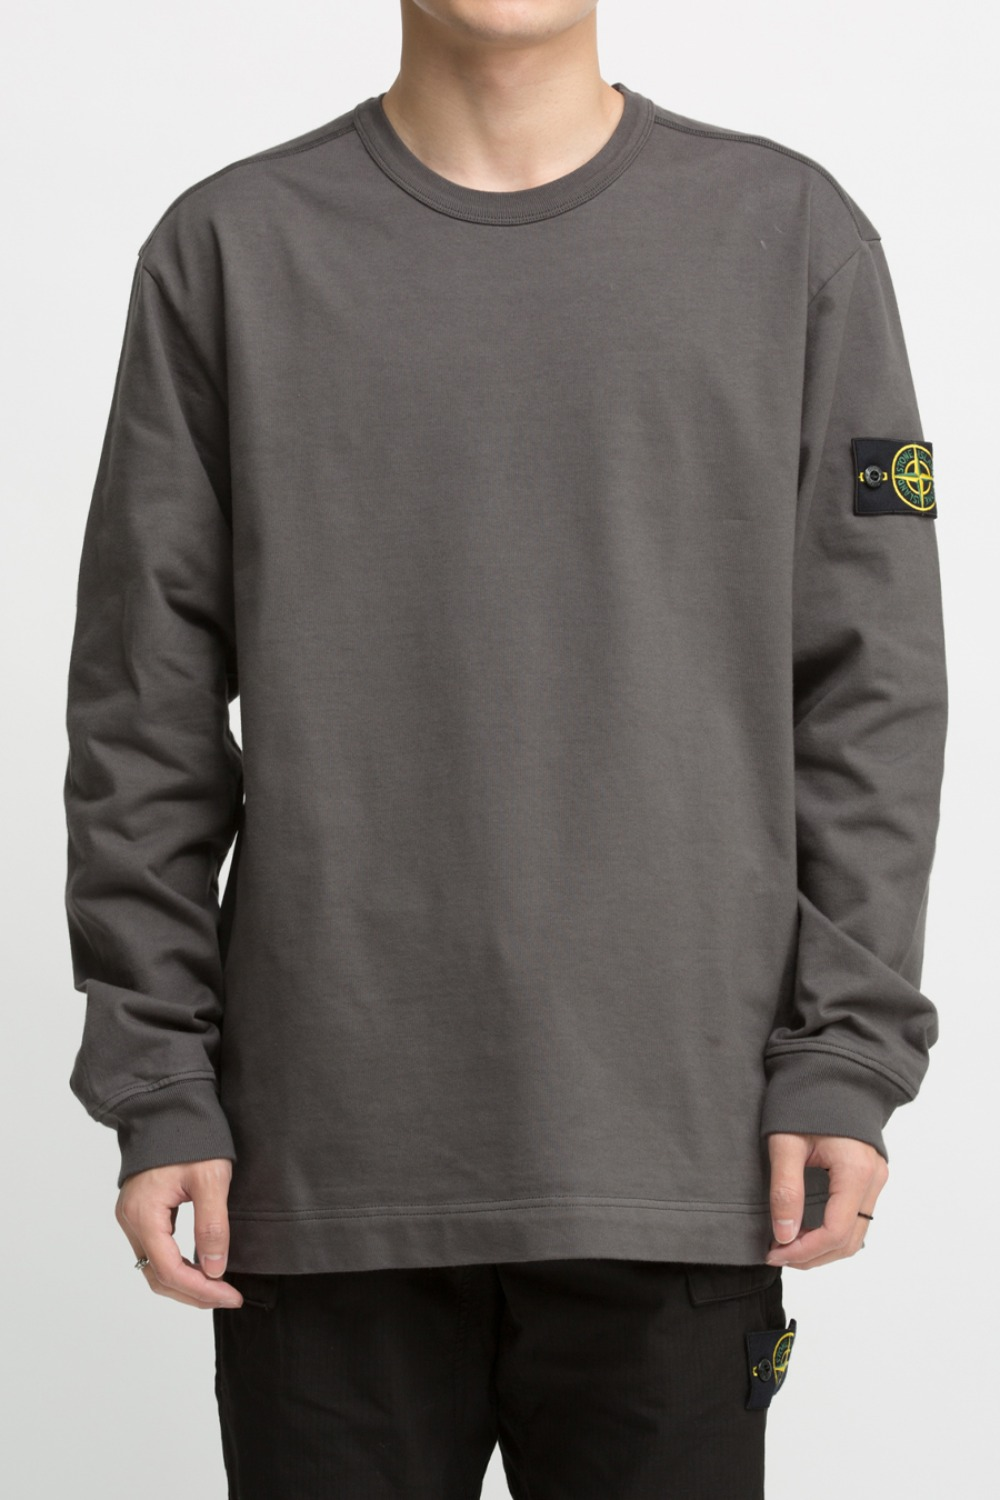 GARMENT DYED CREWNECK SWEATSHIRT CHARCOAL